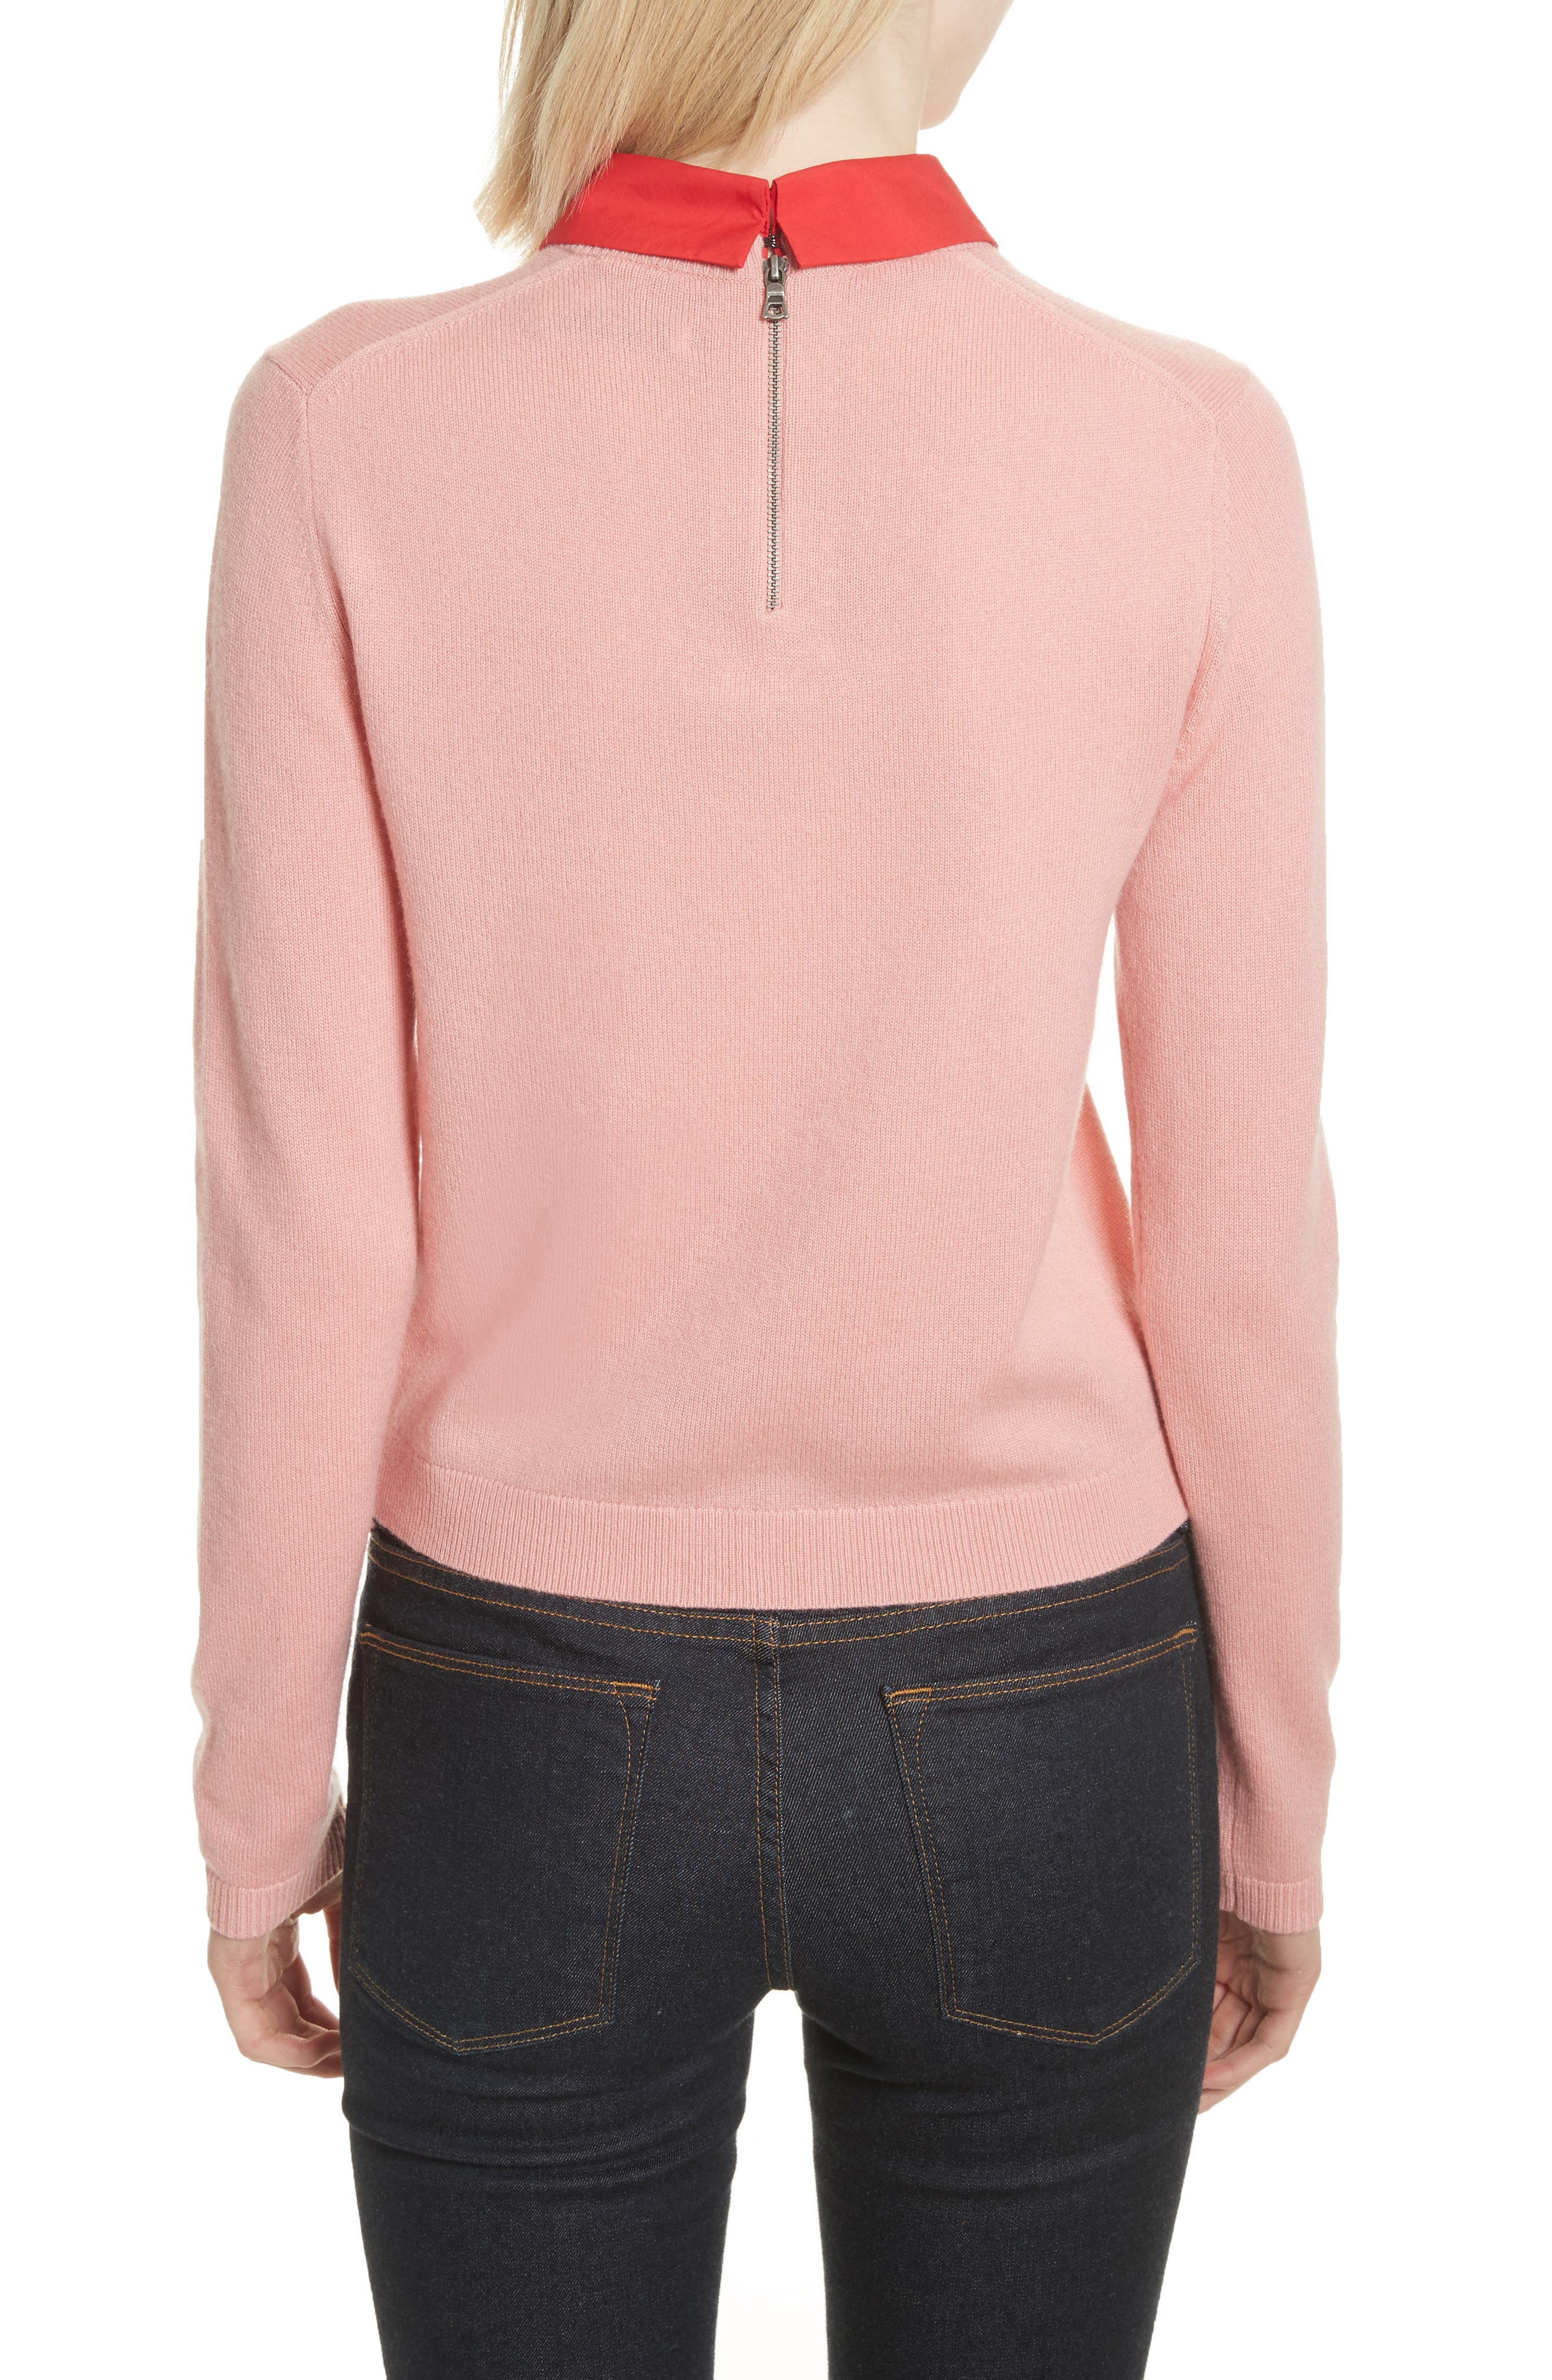 ALICE + OLIVIA,                             Big Love Embroidered Cashmere Sweater,                             Alternate thumbnail 2, color,                             651